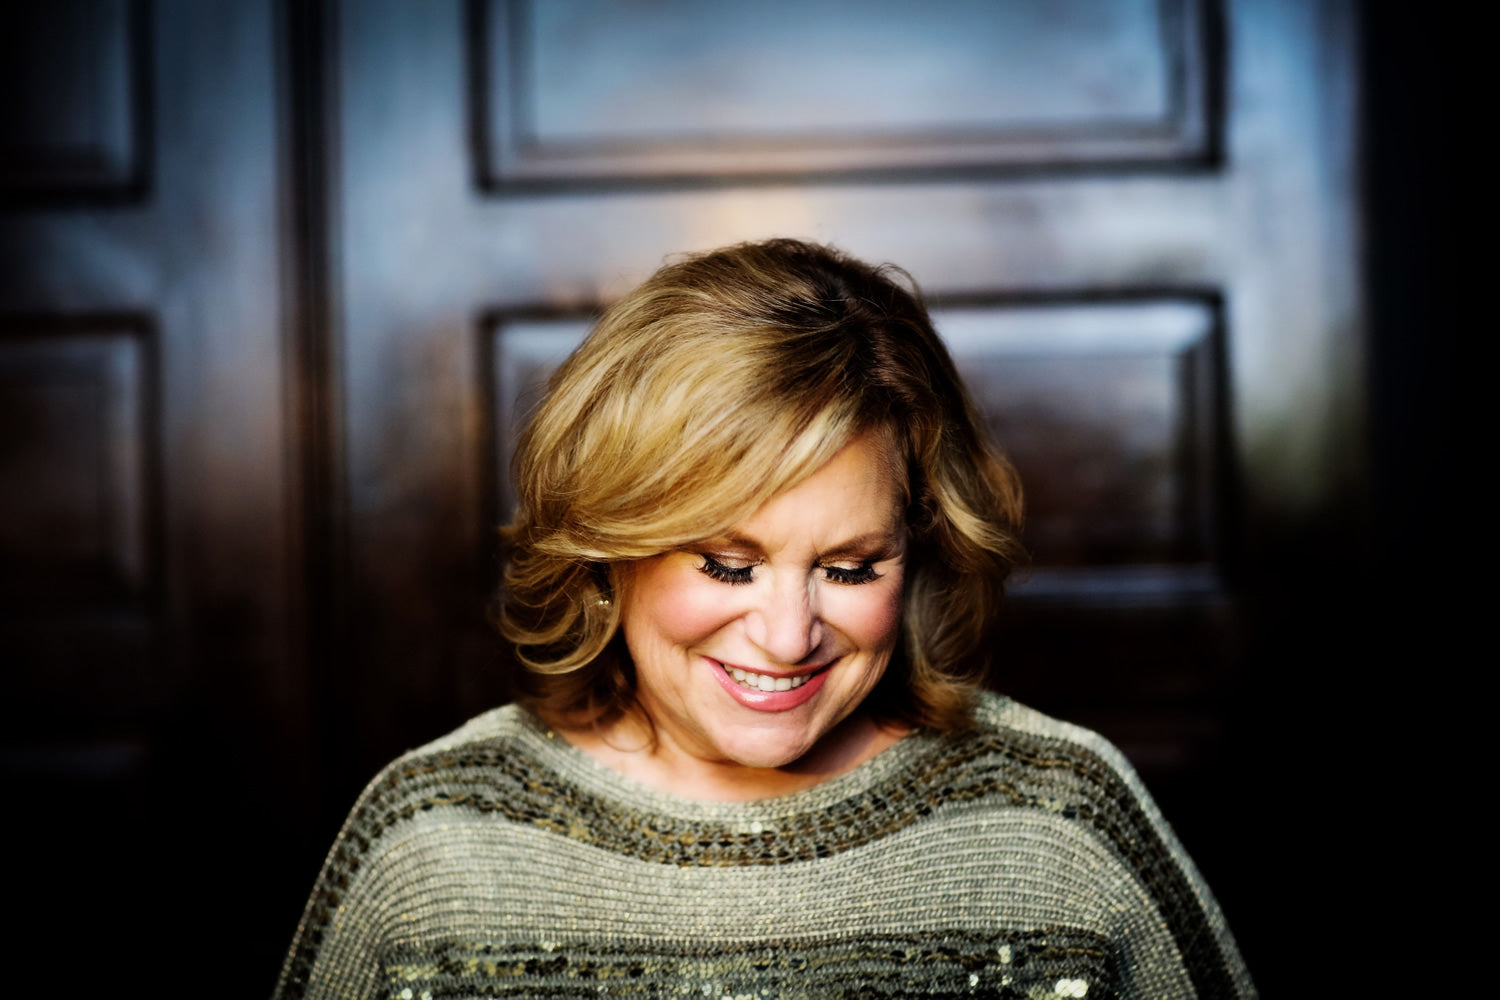 Sandi pattys first husband -  Of Our Time With Five Grammy Awards Four Billboard Music Awards Three Platinum Records Five Gold Records And Eleven Million Units Sold Sandi Patty